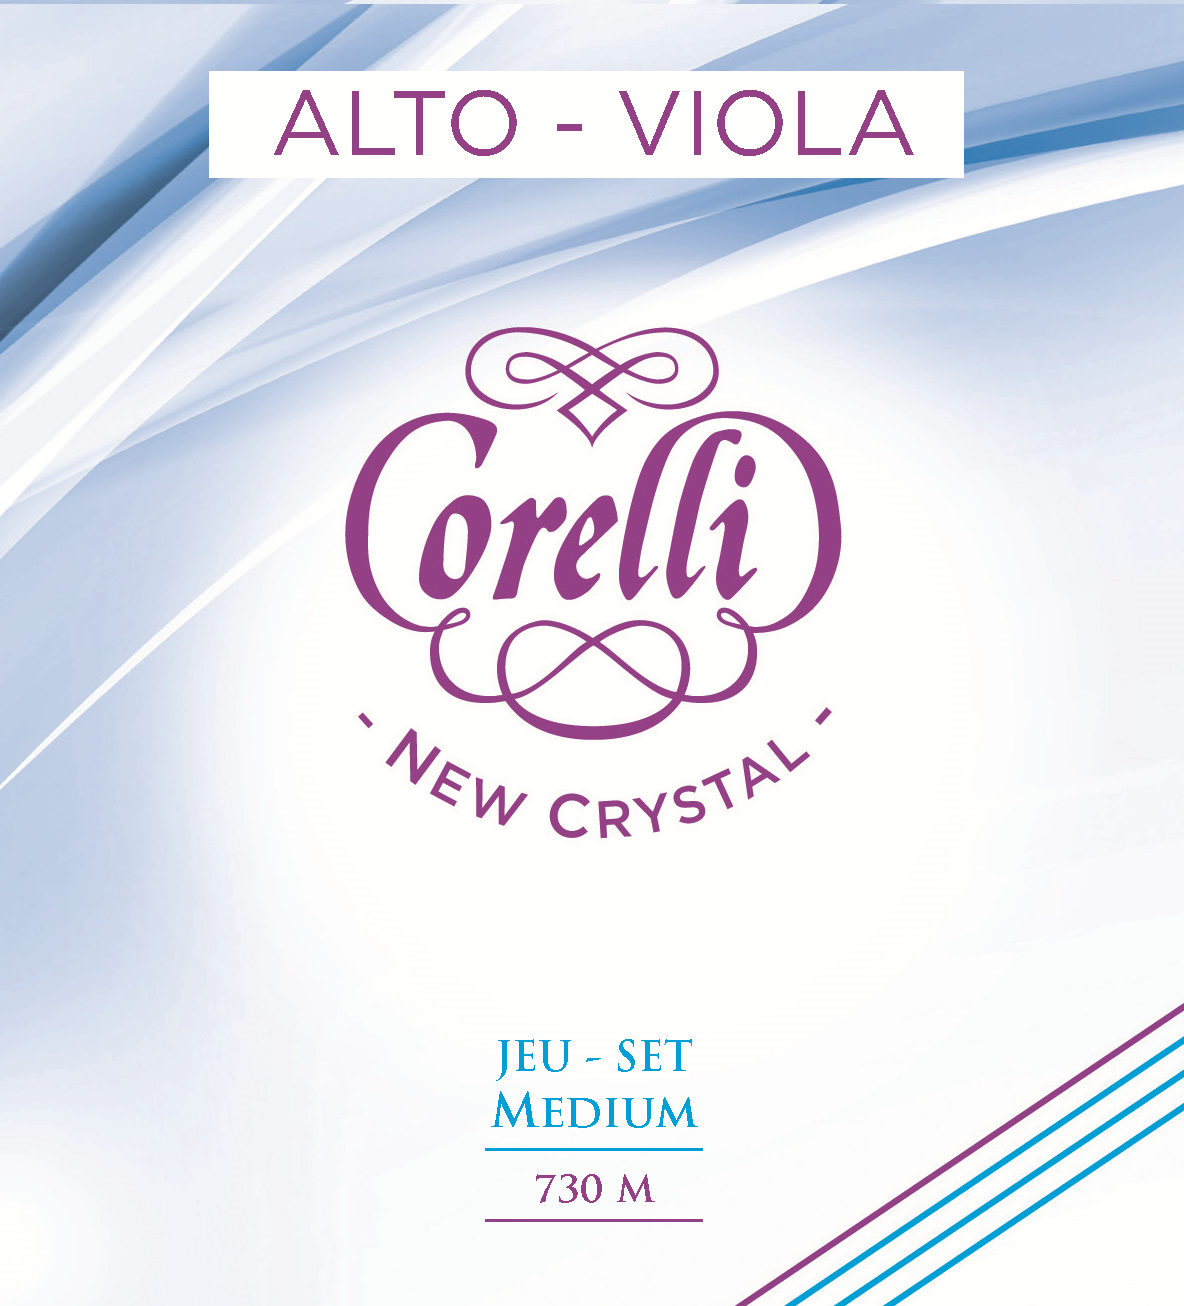 CORELLI NEW CRYSTAL MEDIUM 730M ALTO